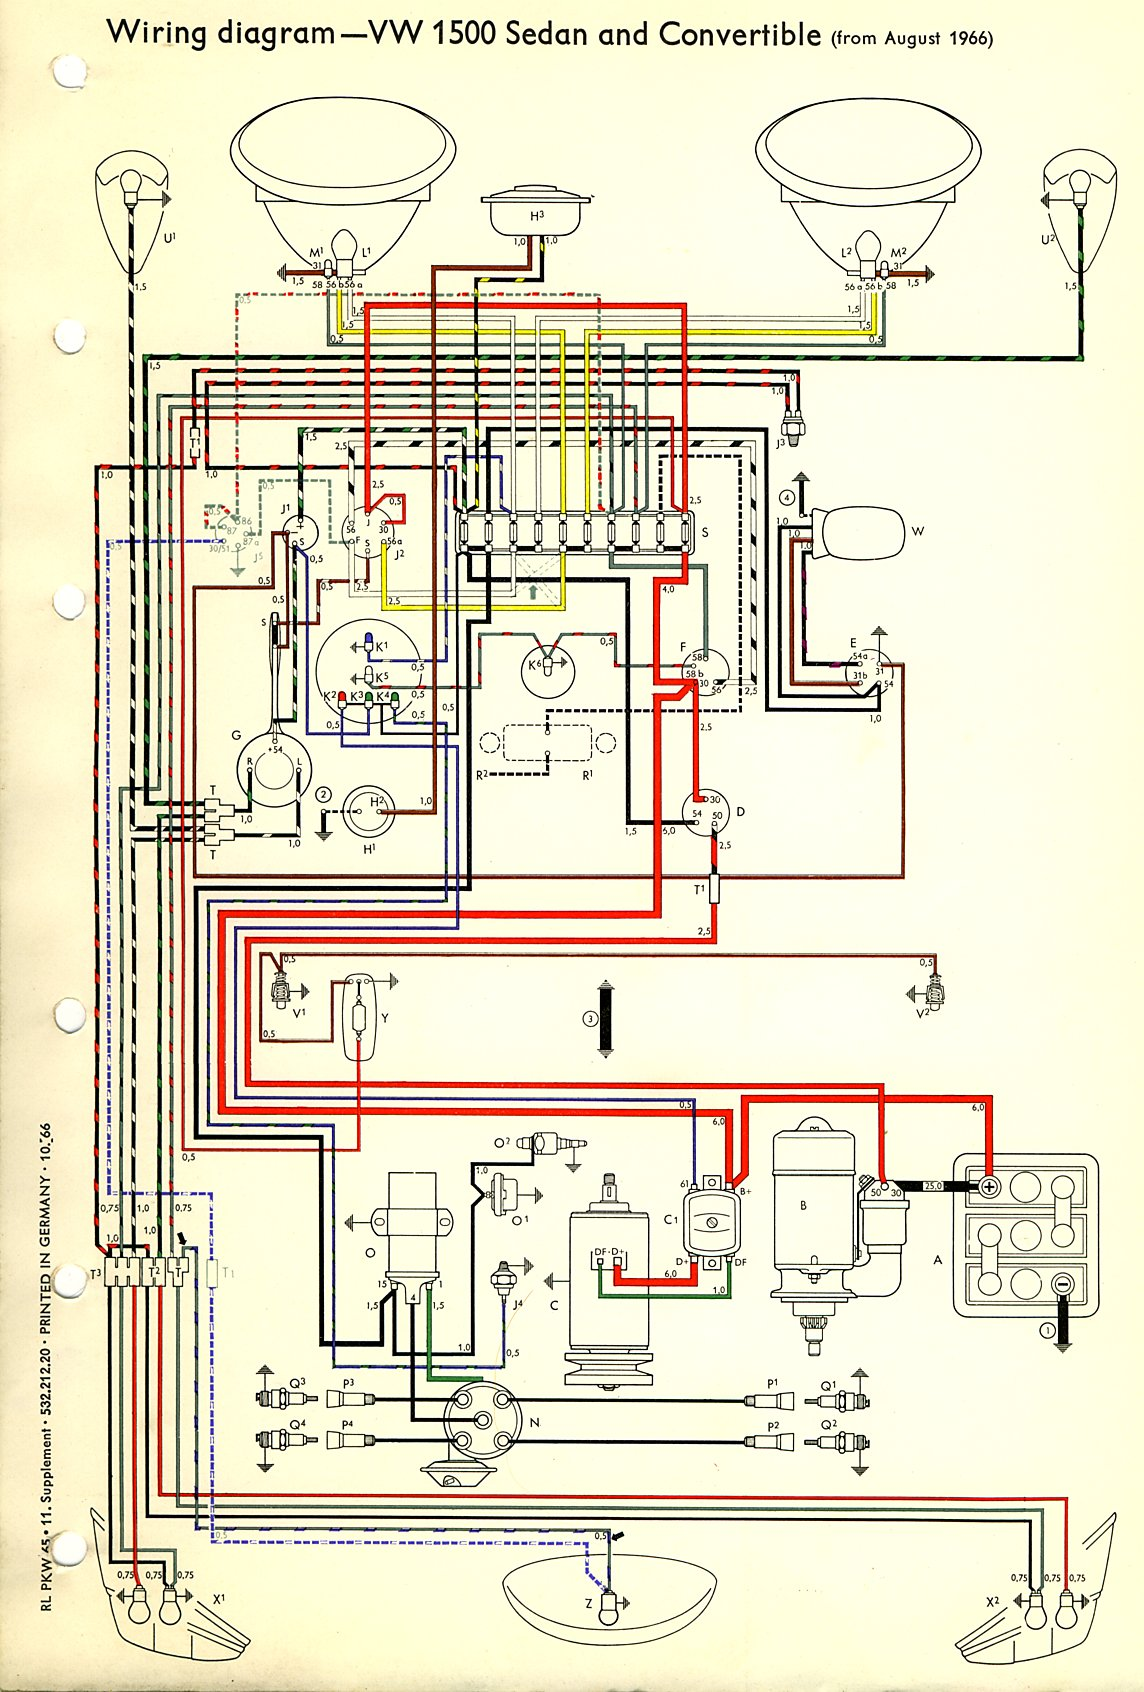 1967 vw beetle wiring harness 1967 beetle wiring diagram | thegoldenbug.com